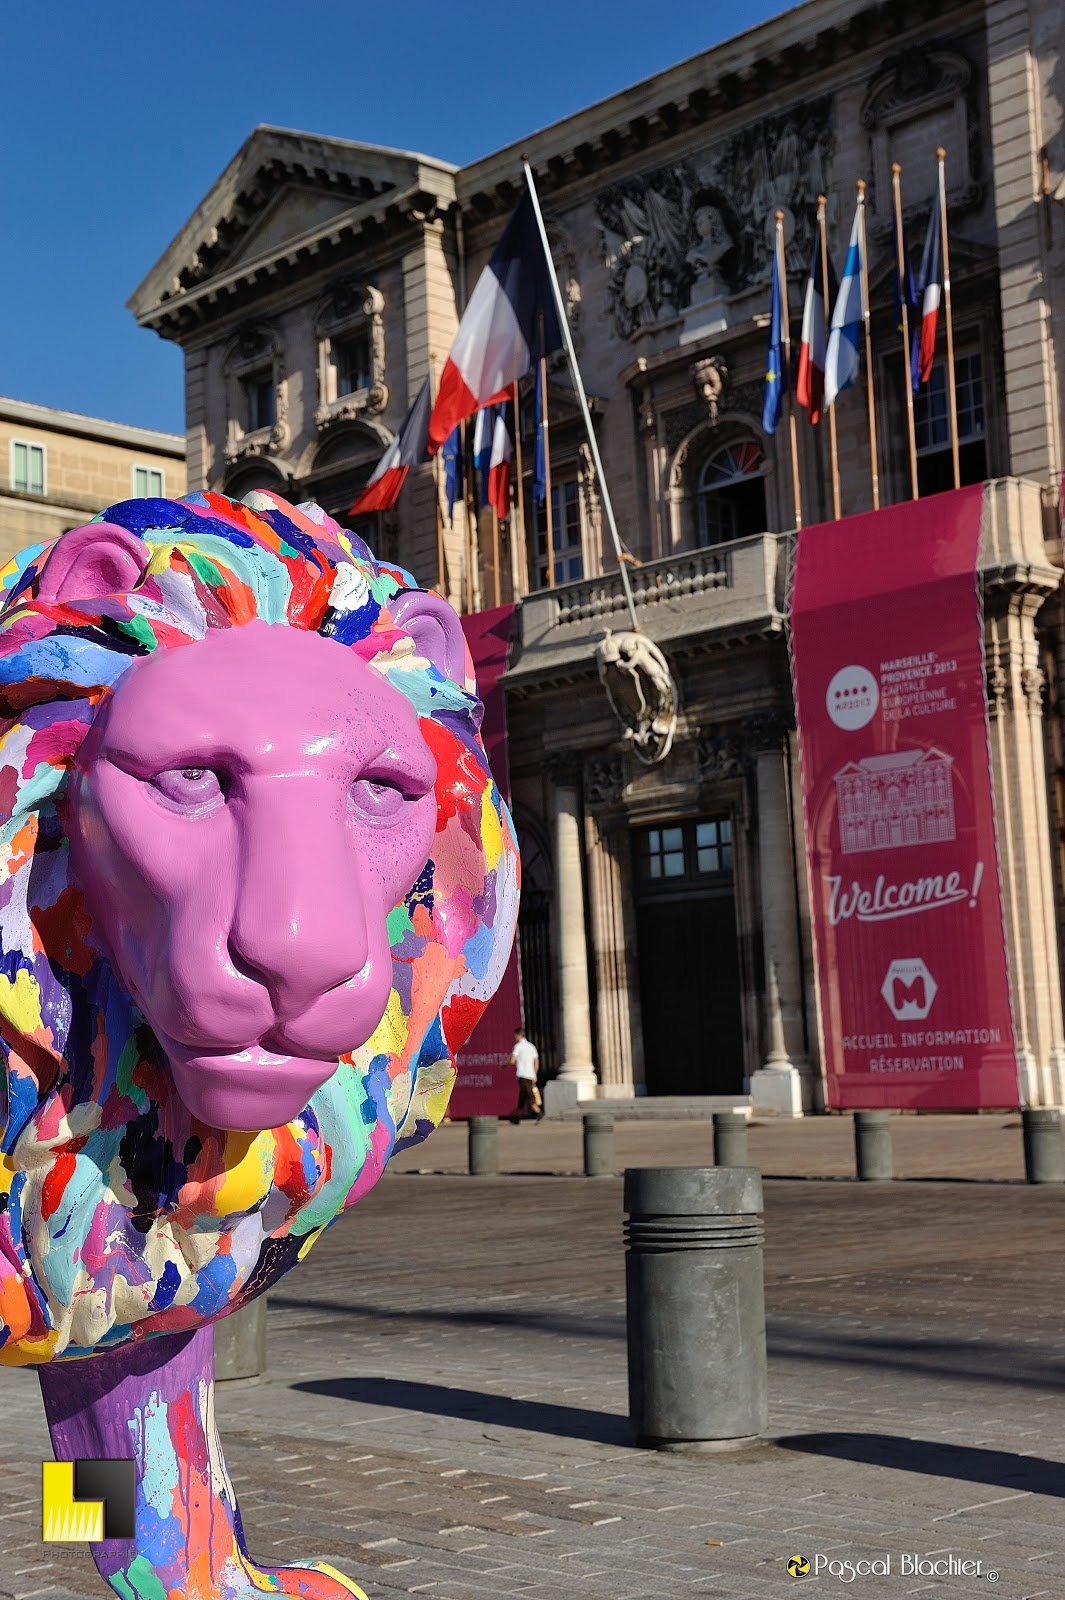 Lion rose devant la mairie de Marseille photo blachier pascal